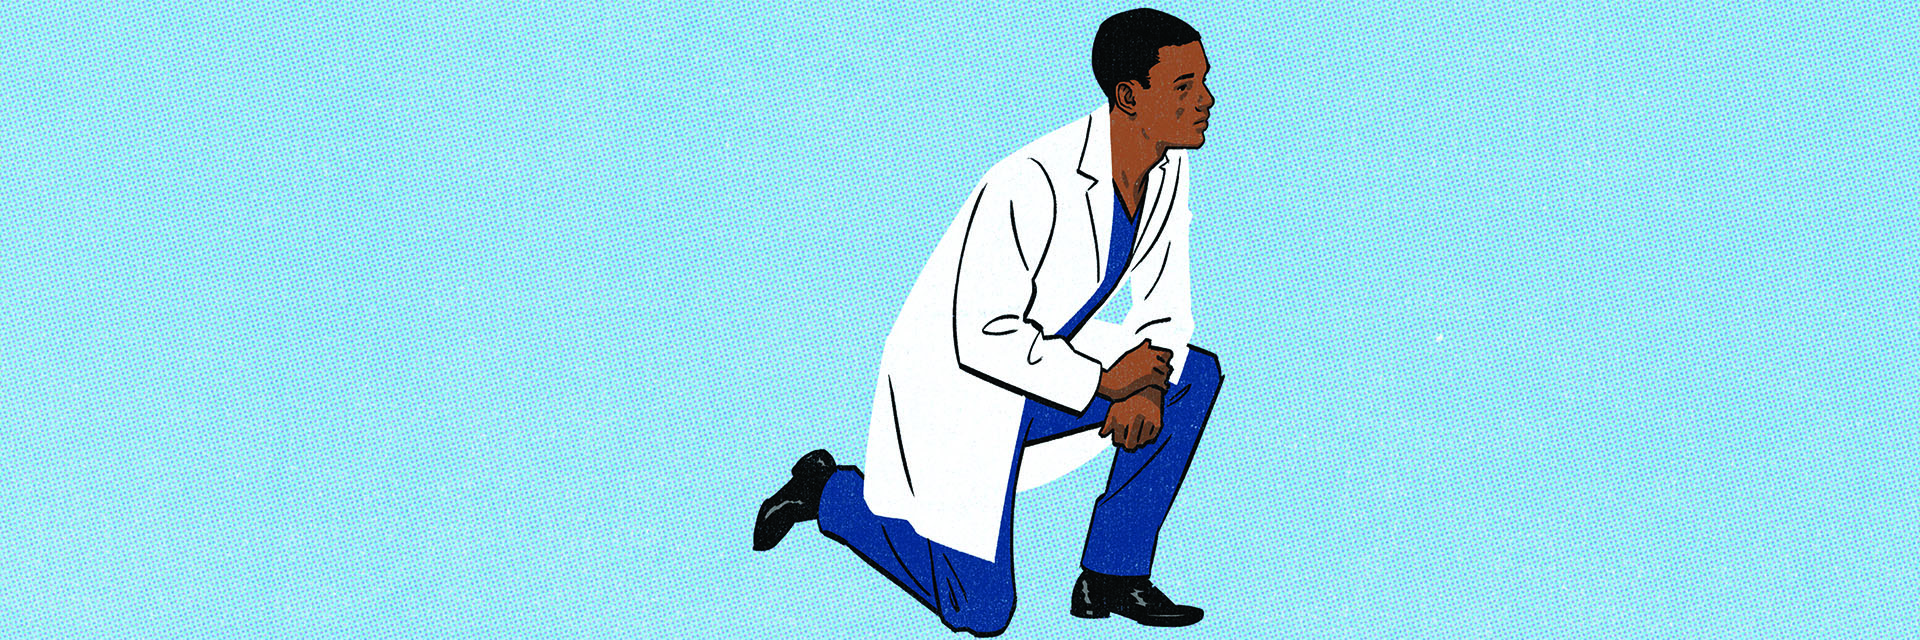 young man in a white coat taking a knee